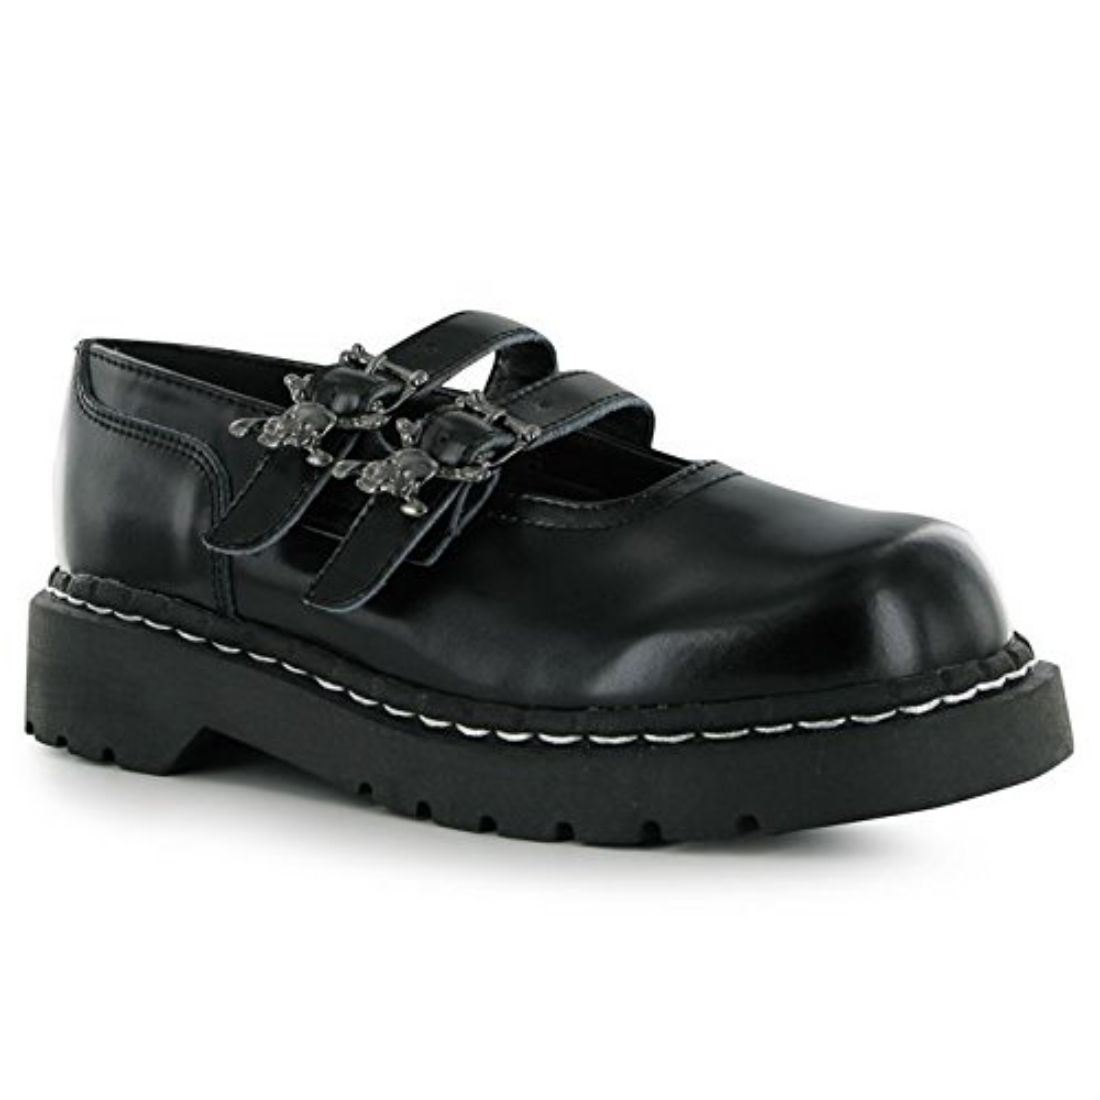 tuk womens shoes buckle fastening chunky